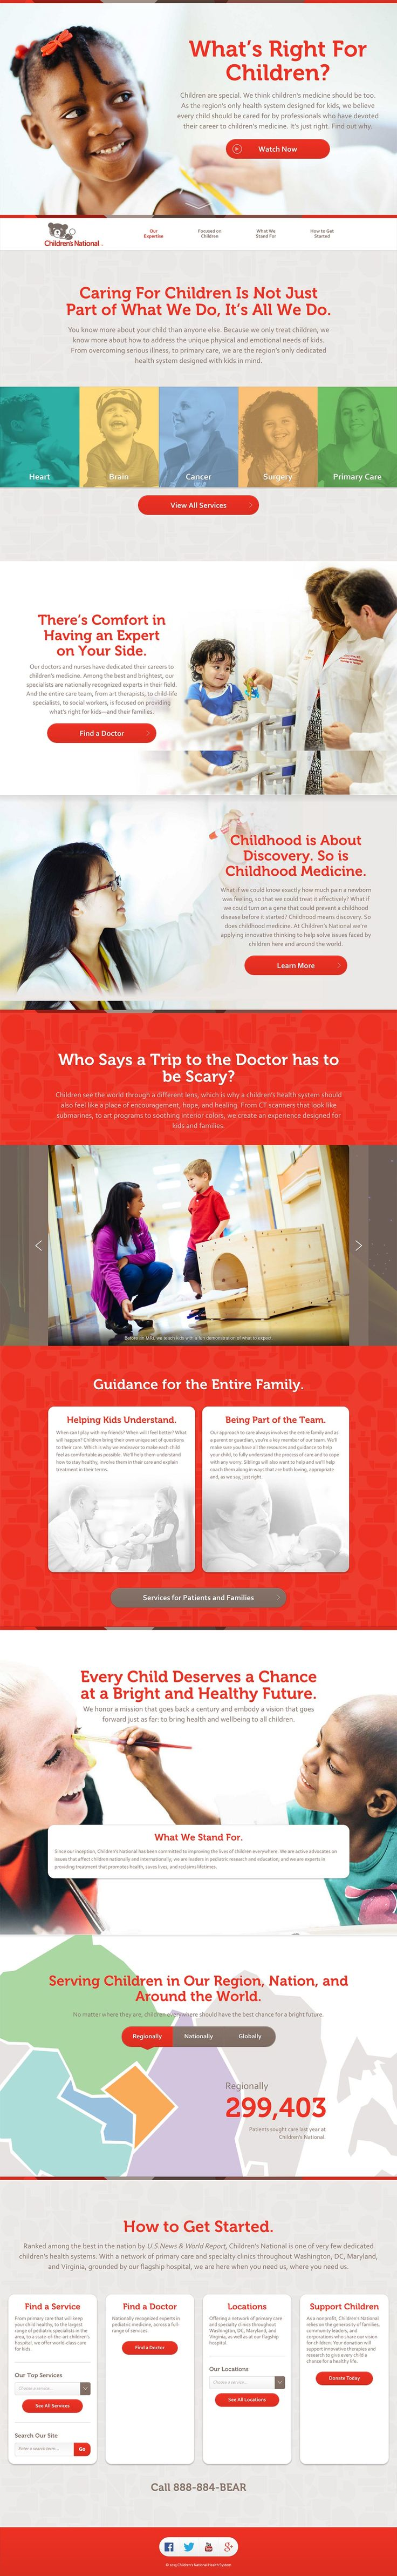 How to design a website for kids - Responsive One Page Campaign To Bring Awareness To A Health System Designed For Kids One Website Design